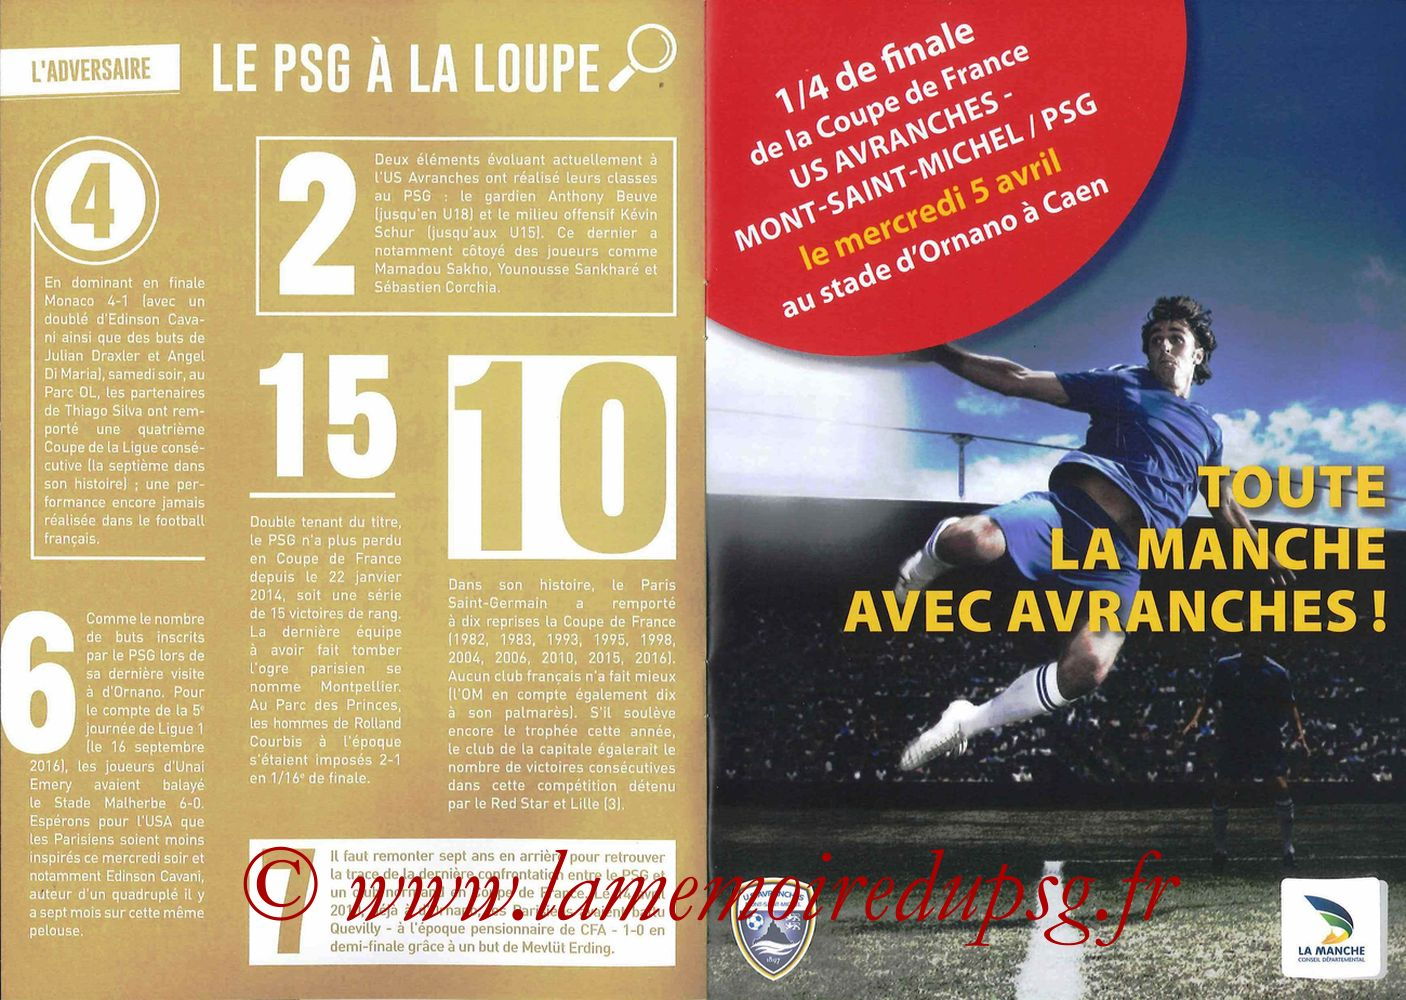 2017-04-05  Avranches-PSG (Quart CF à Caen, Programme officiel) - Pages 06 et 07